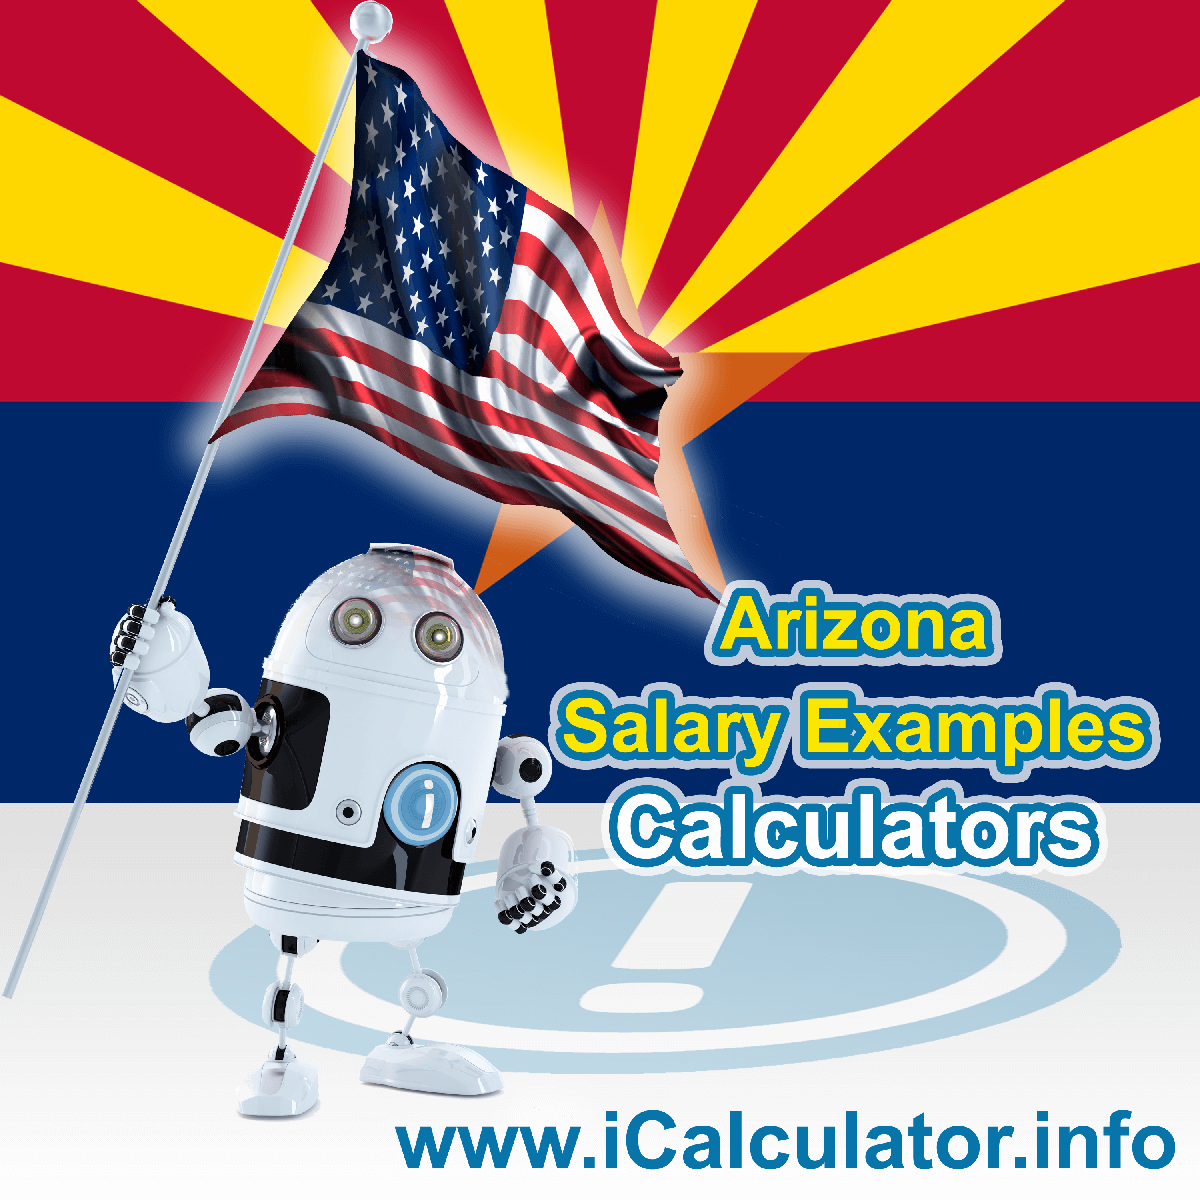 Arizona Salary Example for $90.00 in 2020 | iCalculator | $90.00 salary example for employee and employer paying Arizona State tincome taxes. Detailed salary after tax calculation including Arizona State Tax, Federal State Tax, Medicare Deductions, Social Security, Capital Gains and other income tax and salary deductions complete with supporting Arizona state tax tables